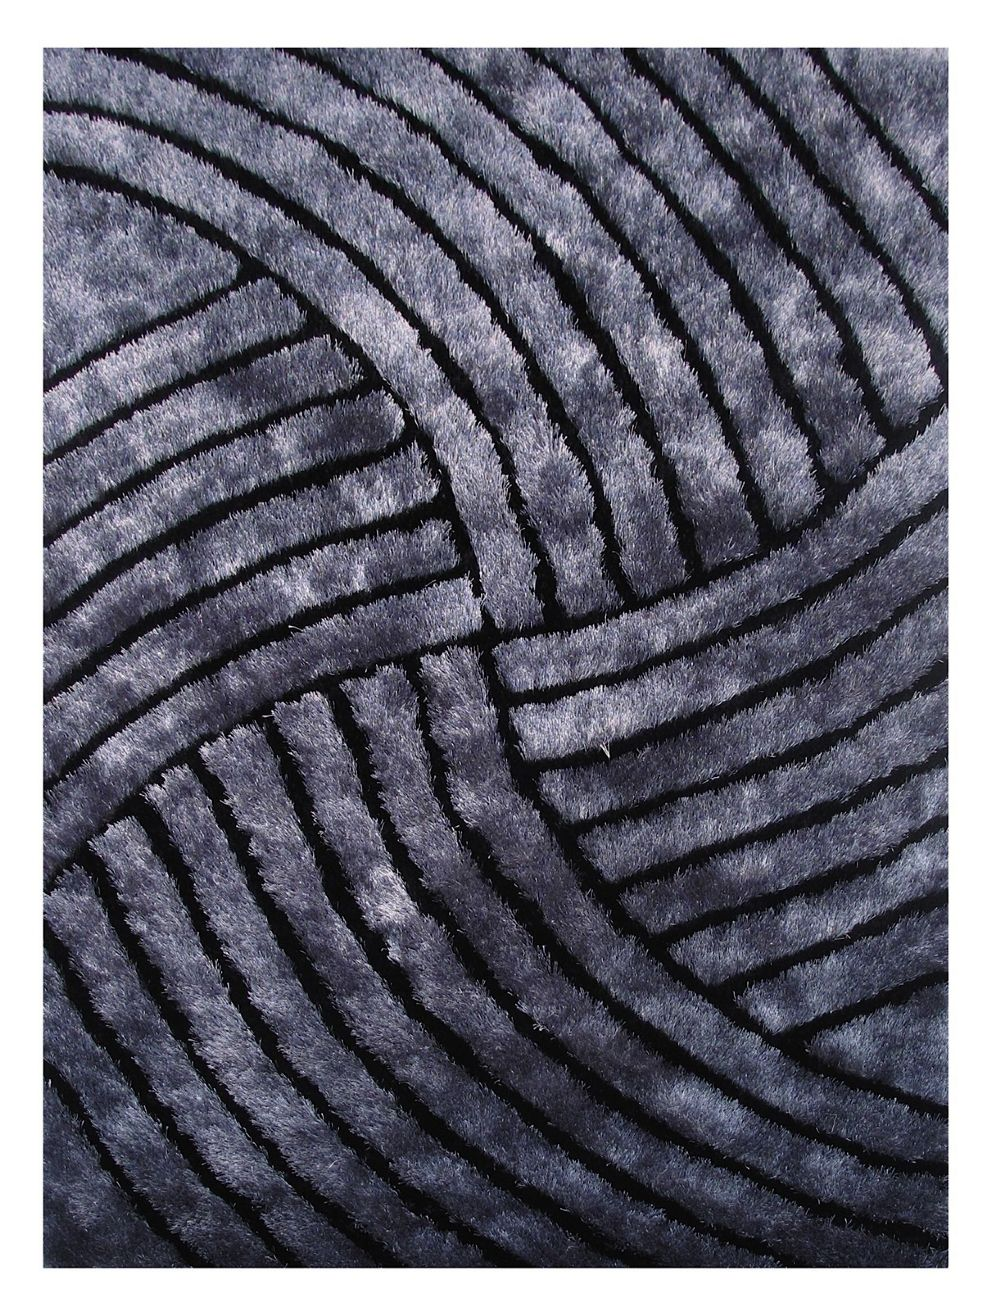 la rugs contempo shaggy shag area rug collection